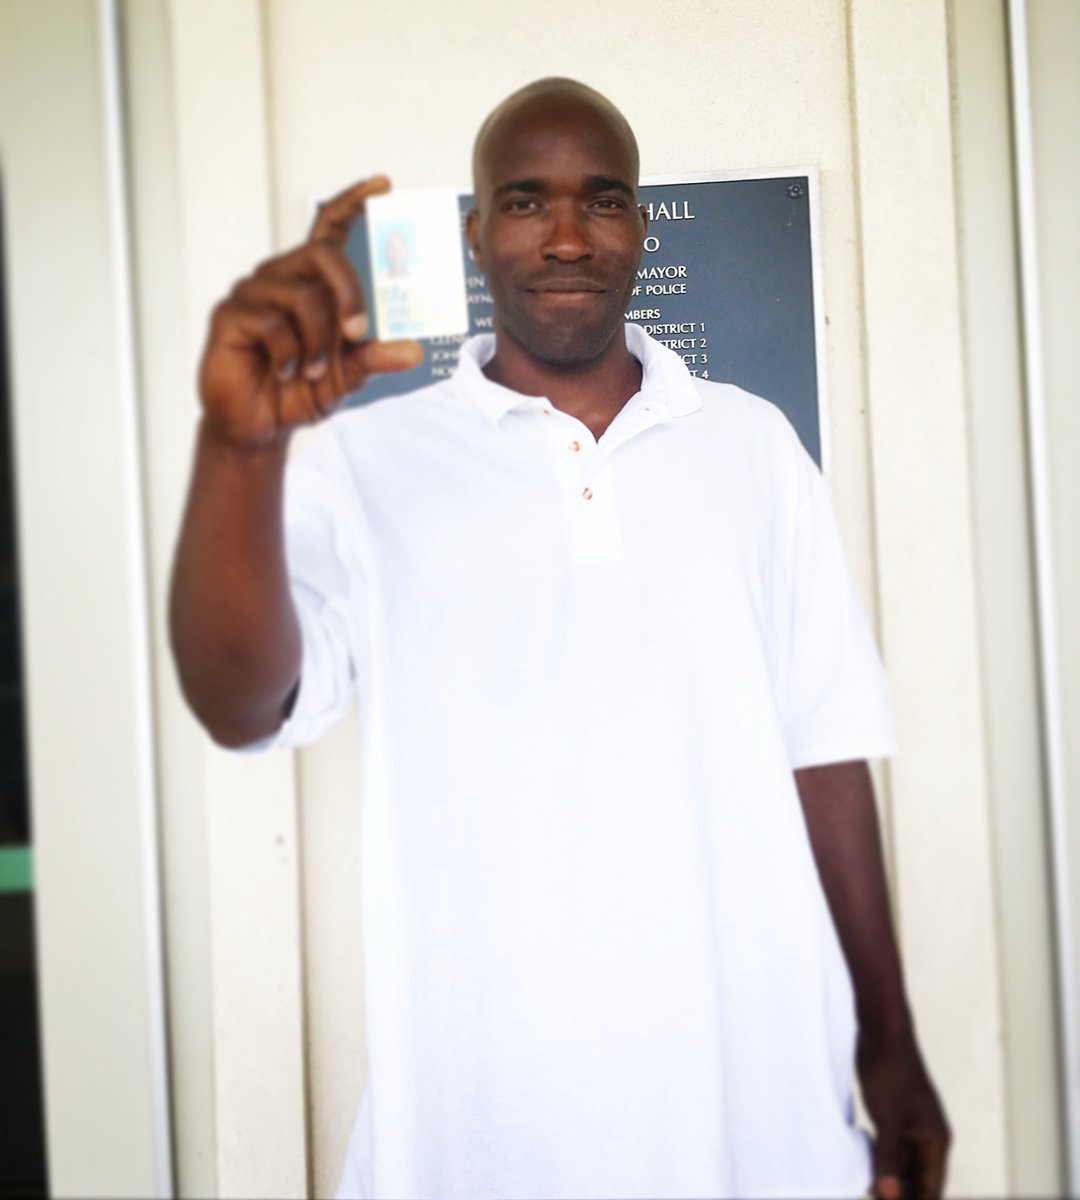 Corey got his first state ID today after a 3 hour wait at the #DMV. Transportation, cost, and logistics are a difficult barrier after incarceration. Your support has helped Corey's reentry. He spent the wait reading everyone's messages of support. Thank you! #freecorey #reentry<br>http://pic.twitter.com/CjcY1cM9Wg